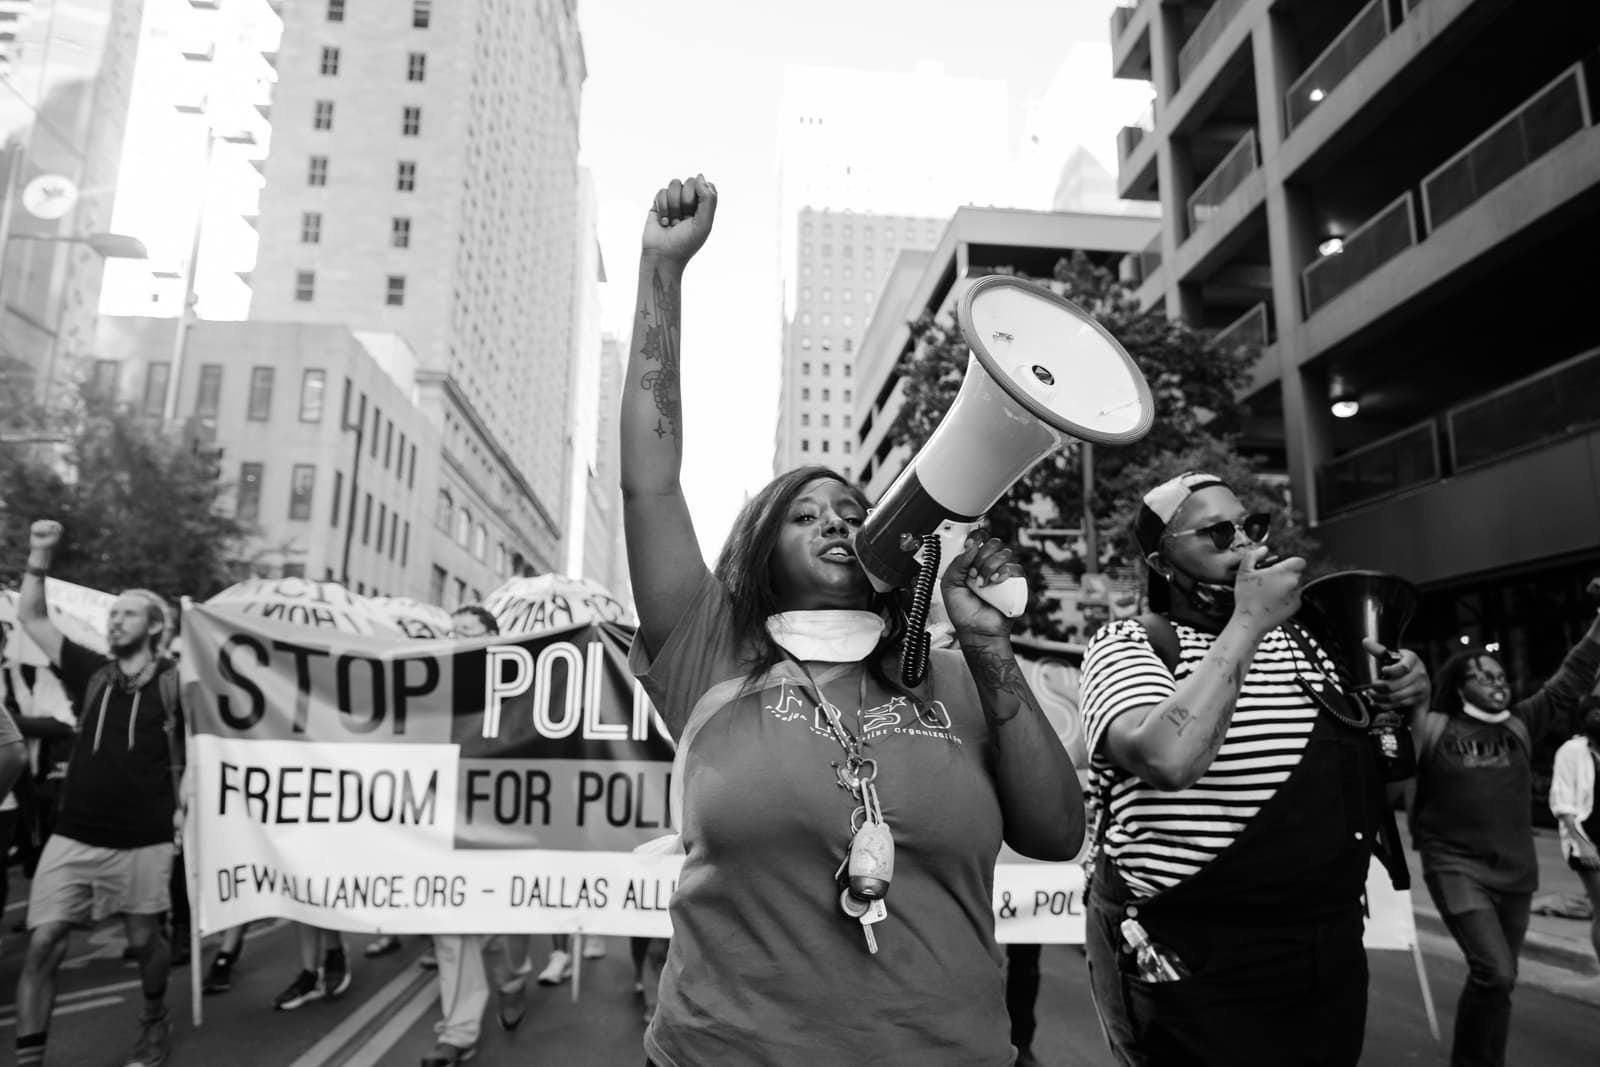 Civil rights activists marching through downtown Dallas against racial injustice. My best photo of 2020.